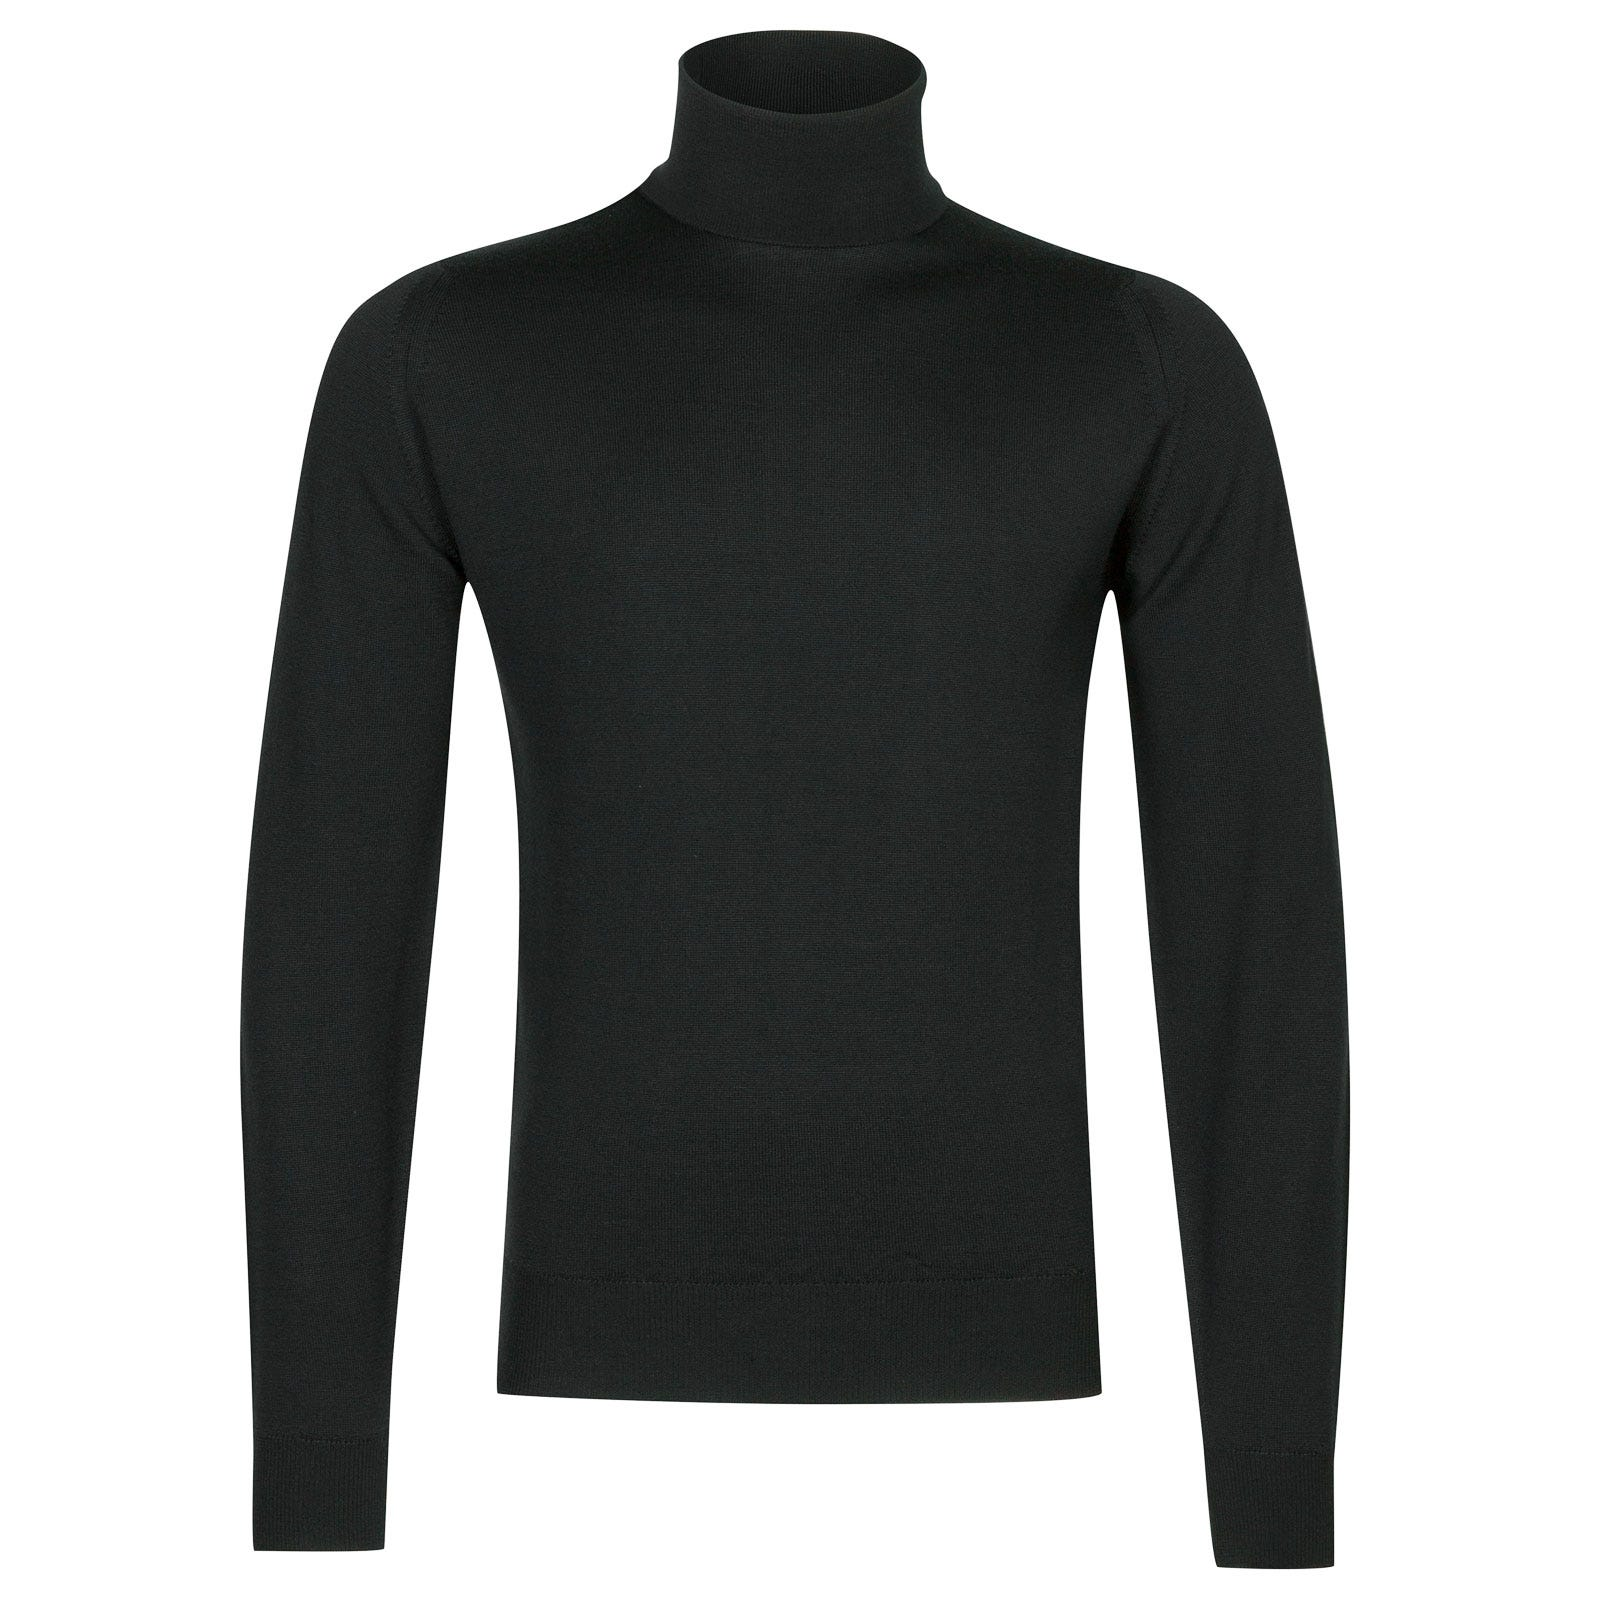 John Smedley connell Merino Wool Pullover in Racing Green-XL